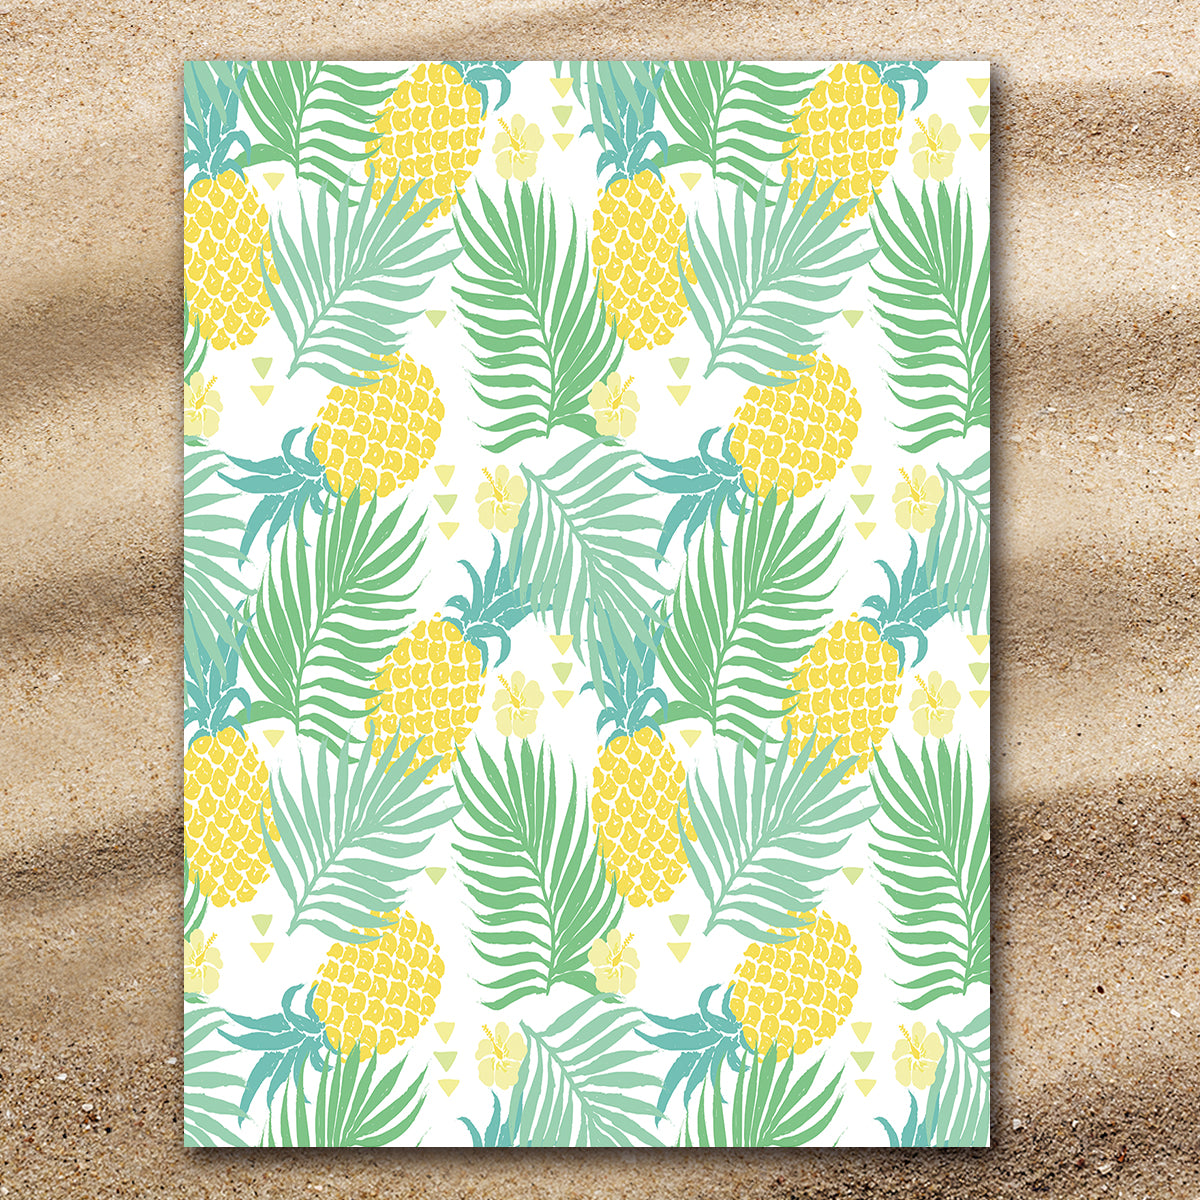 Pineapple Delight Extra Large Towel